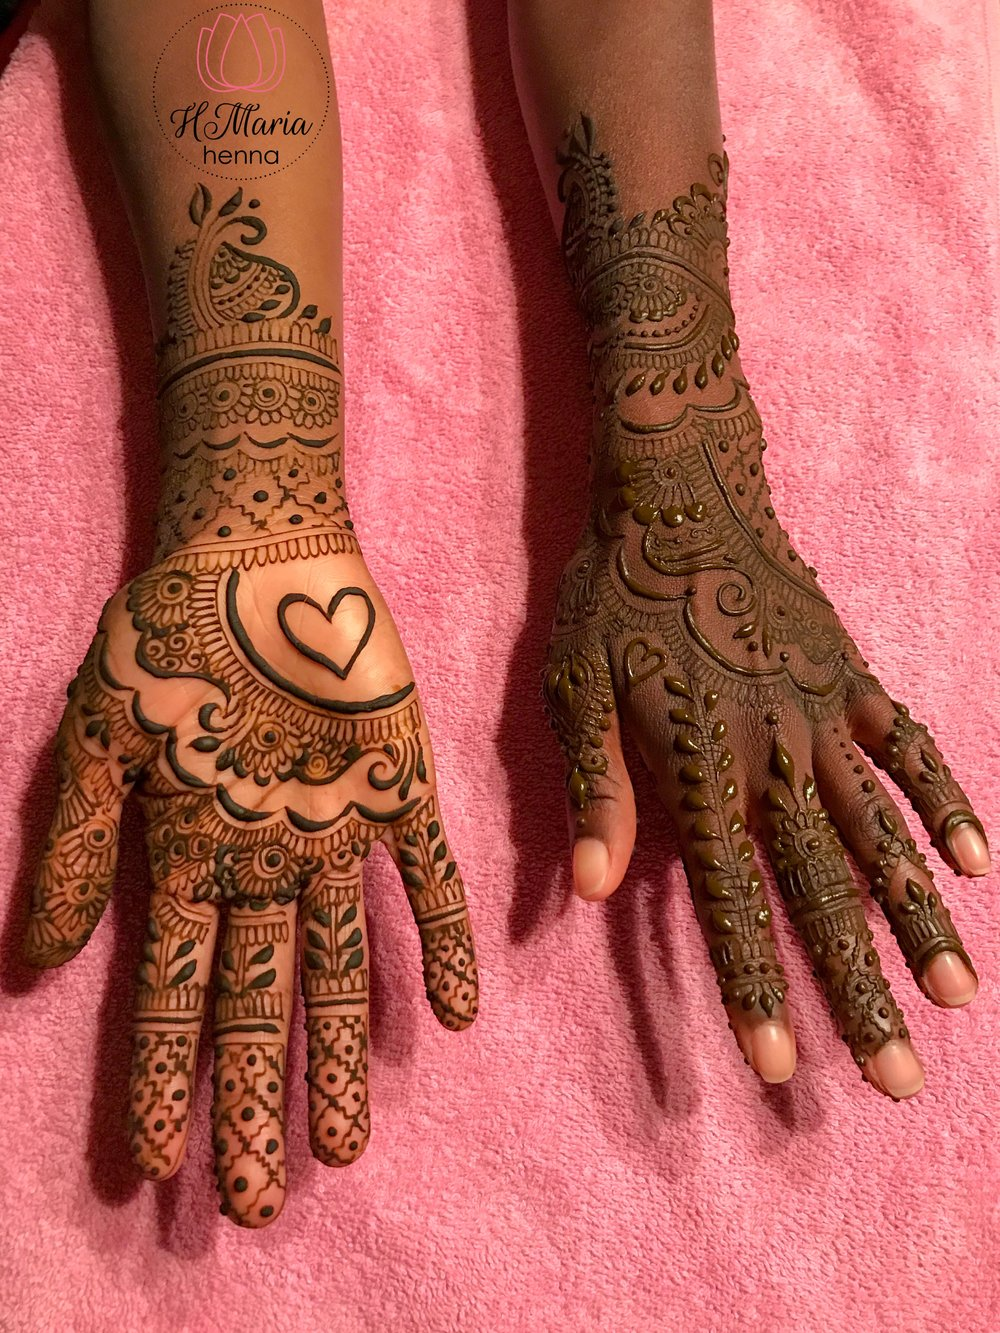 30+Hala+Maria+Henna+Mehndi+Simple+Bridal+Wedding+Sangeet+Mandala+Paisley+Grid+Jewelry+Strip+Bridal+Shower+Floral+Designs+Love+Africa+Pink+Melaninated